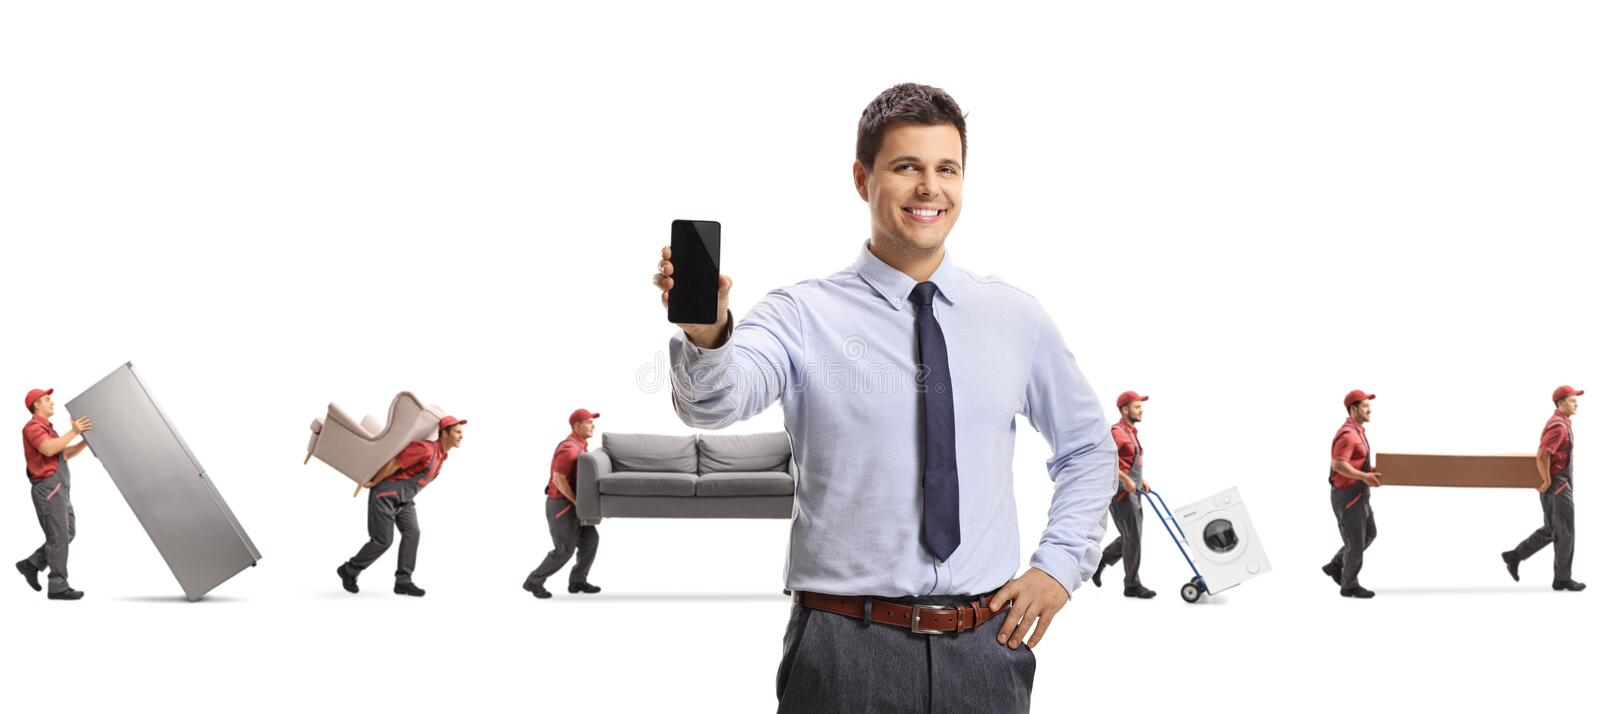 Male manager with a mobile phone and movers carrying furniture stock image